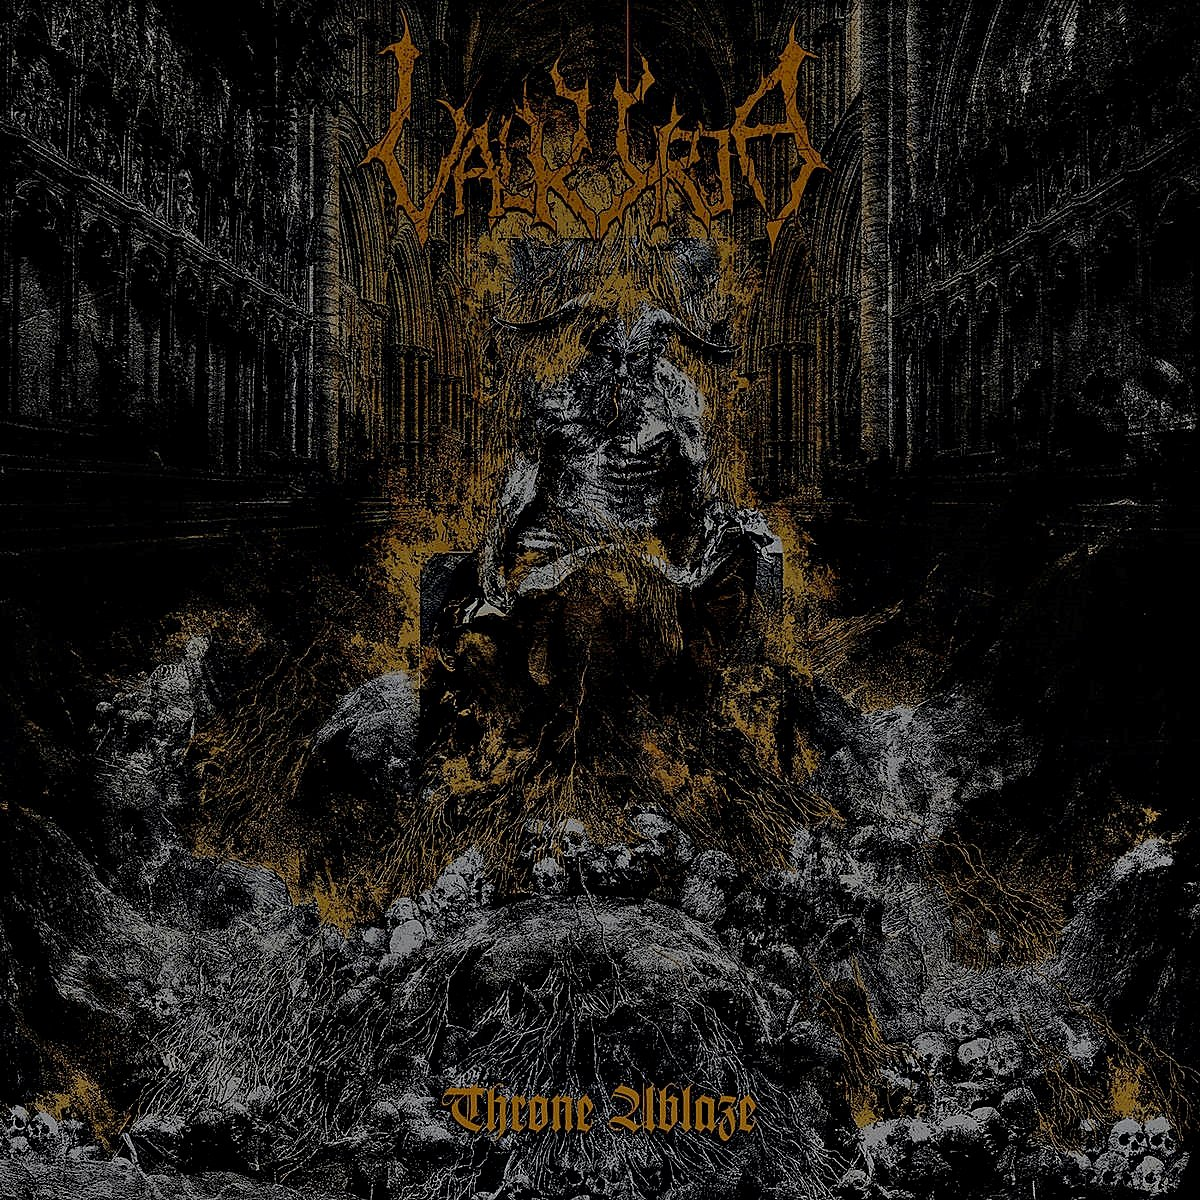 VALKYRJA - Throne Ablaze – CD